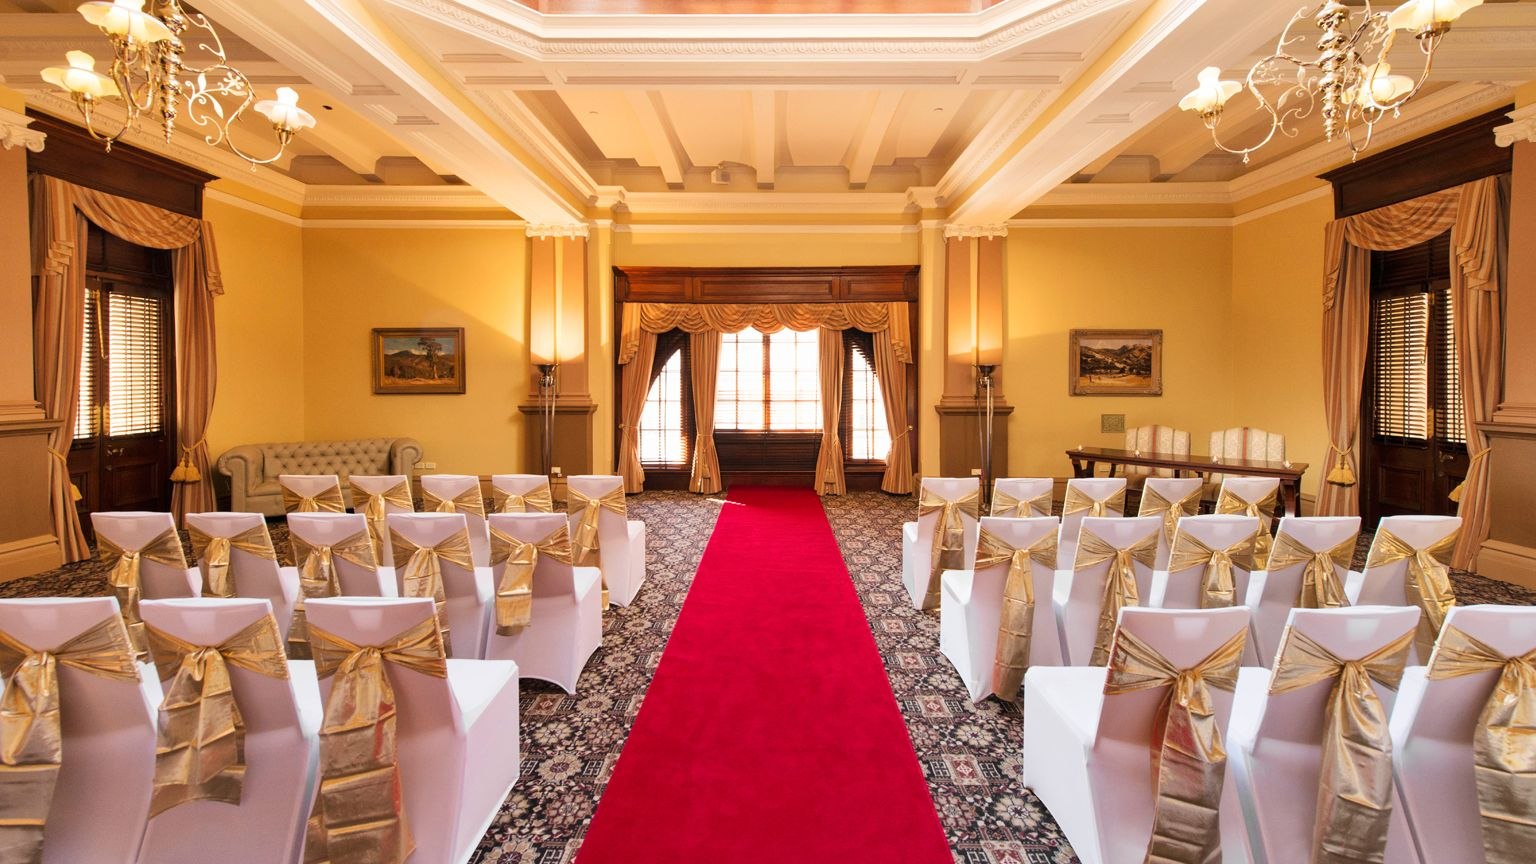 wedding receptions gold coast qld%0A Tie the knot at Treasury Heritage Hotel  one of Brisbane u    s most elegant wedding  venues